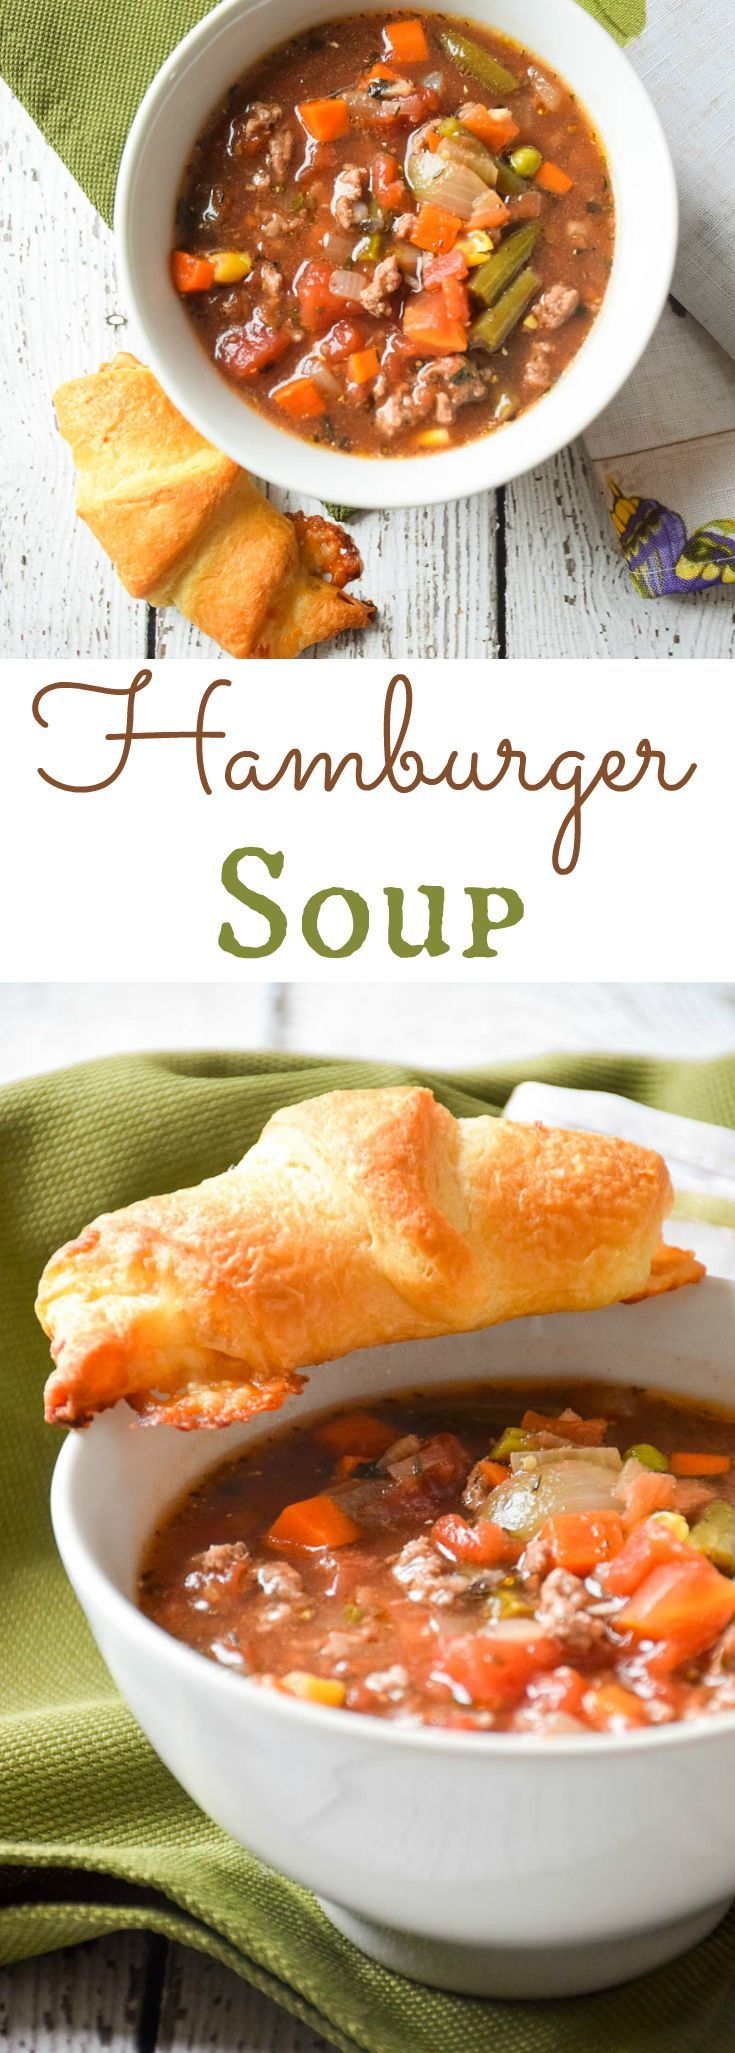 Hamburger Soup is a quick and easy meal to make for those busy weeknights. This delicious dish use ground beef, frozen veggies, and canned tomatoes!